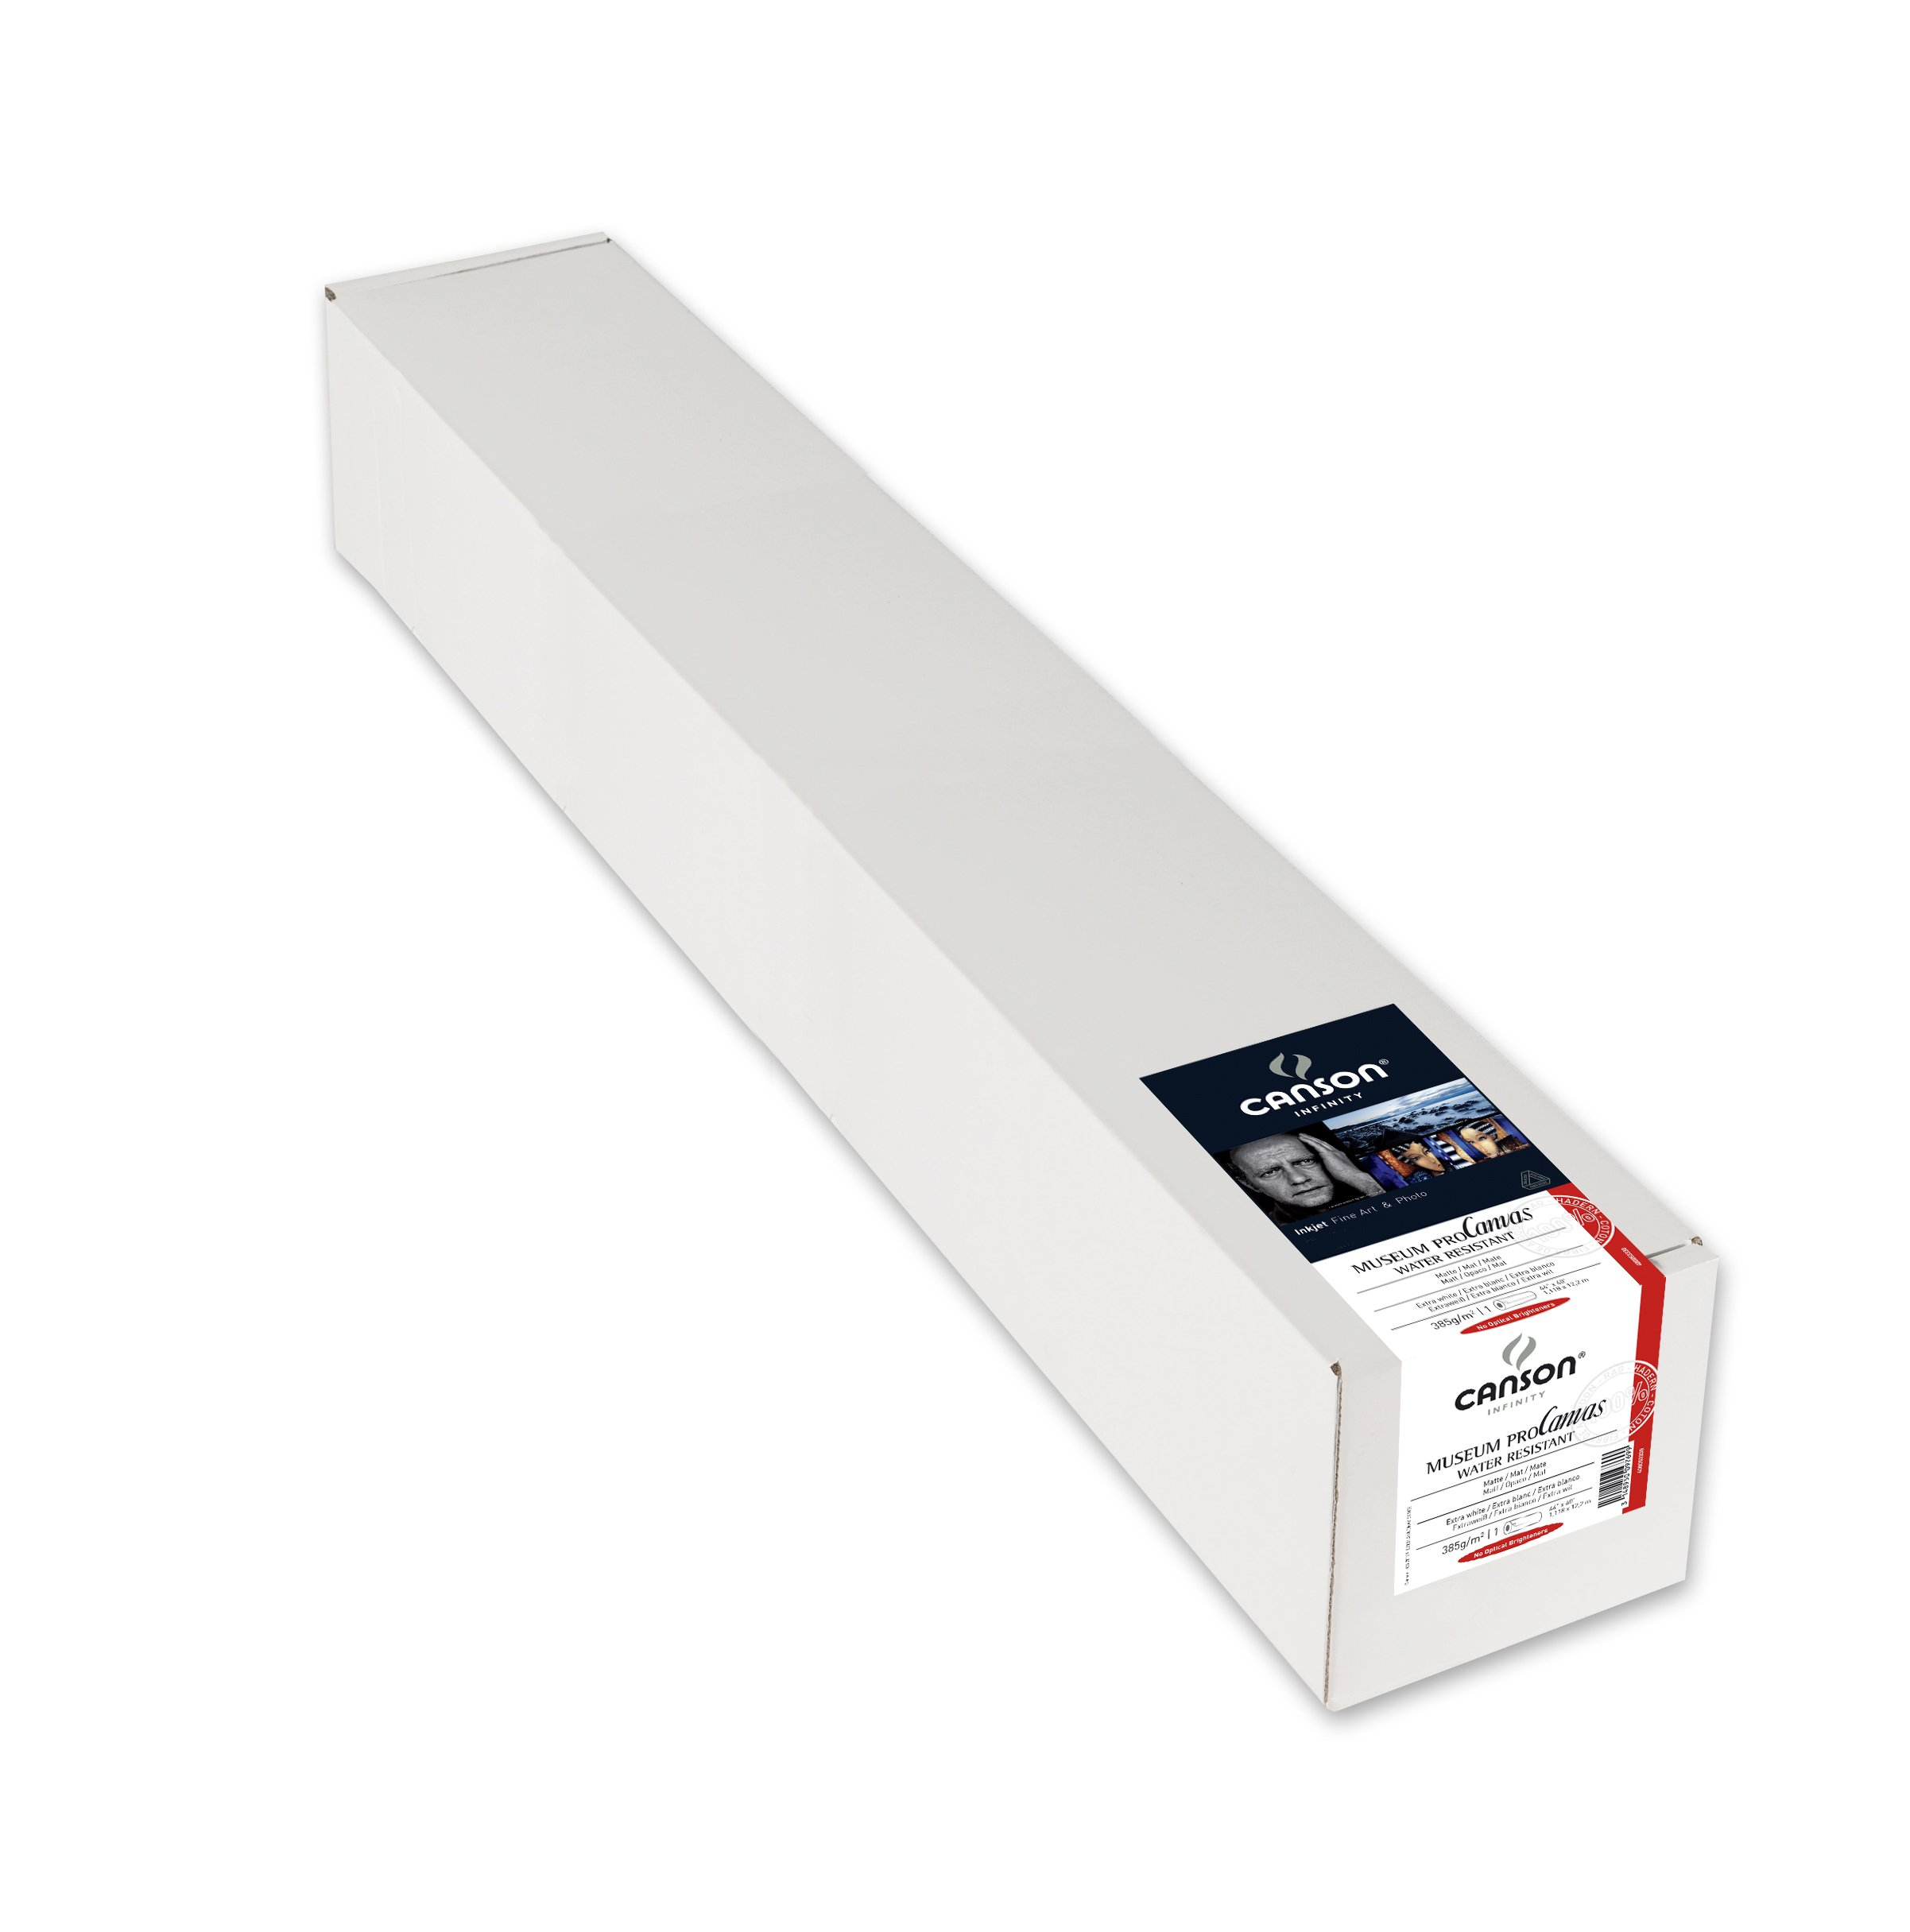 Canson Infinity Museum Pro Canvas Matte, 44 Inch x 40 Foot Roll by Canson